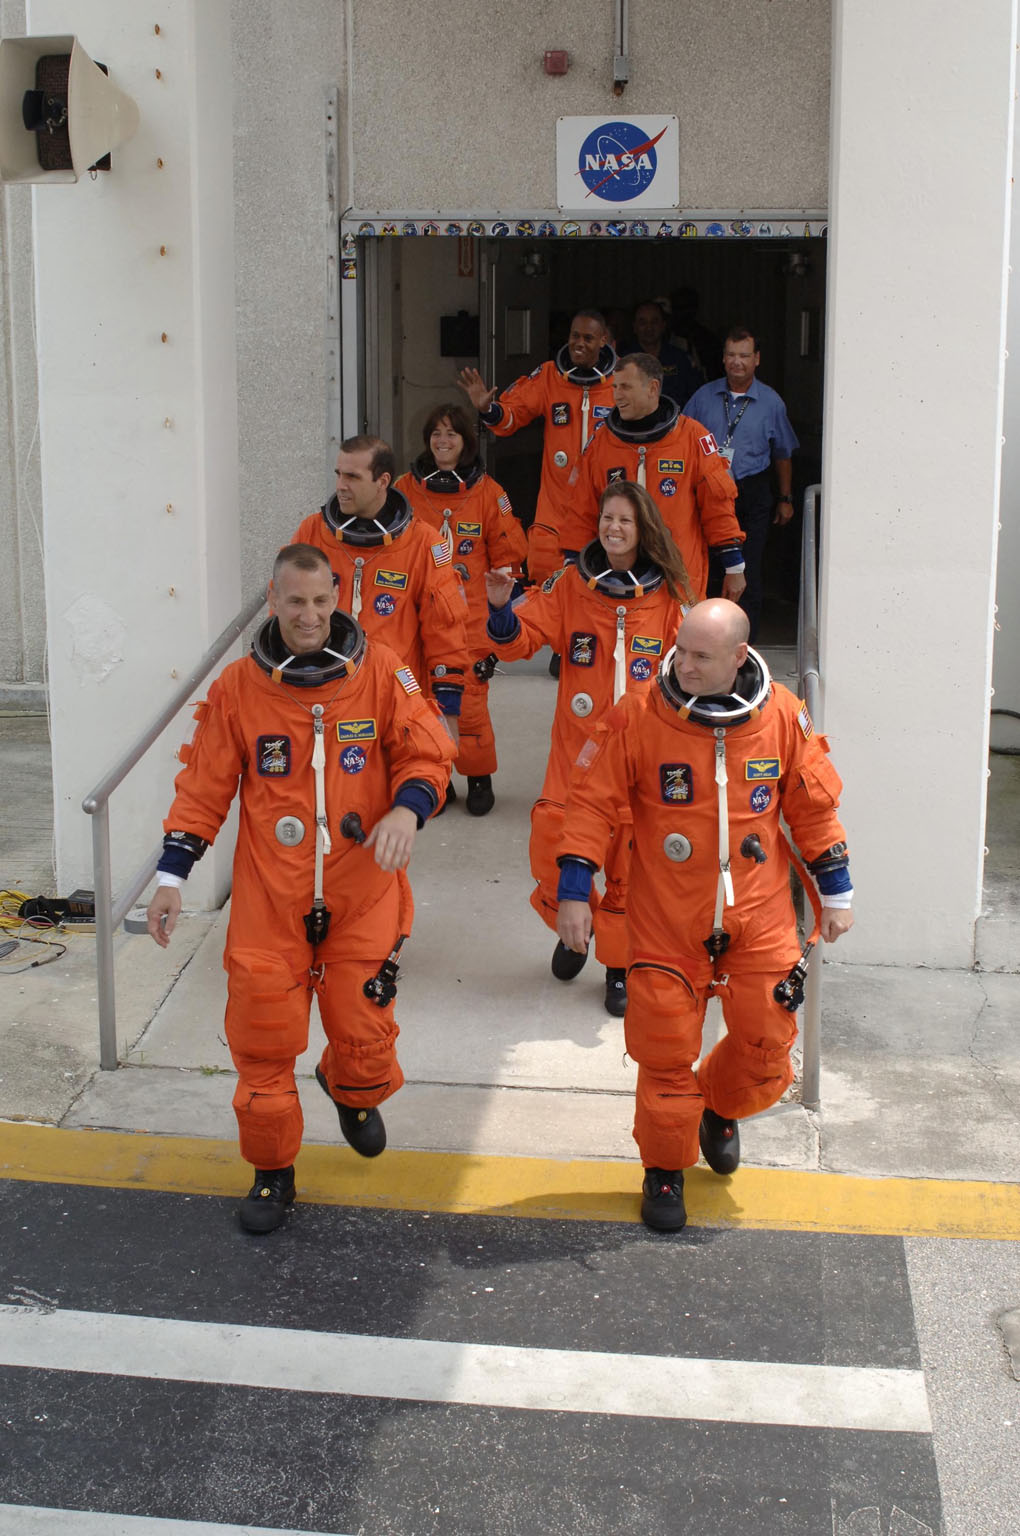 KENNEDY SPACE CENTER, FLA. -- The STS-118 crew stride out of the Operations and Checkout Building eager to get to Launch Pad 39A for launch of Space Shuttle Endeavour at 6:36 p.m. EDT. Leading the way are (left and right) Pilot Charlie Hobaugh and Commander Scott Kelly. Behind them, clockwise, are Mission Specialists Rick Mastracchio, teacher-turned-astronaut Barbara Morgan, Alvin Drew, Dave Williams and Tracy Caldwell. Williams represents the Canadian Space Agency. The STS-118 mission is the 22nd shuttle flight to the International Space Station. It will continue space station construction by delivering a third starboard truss segment, S5, and other payloads such as the SPACEHAB module and the external stowage platform 3. The 11-day mission may be extended to as many as 14 depending on the test of the Station-to-Shuttle Power Transfer System that will allow the docked shuttle to draw electrical power from the station and extend its visits to the orbiting lab. NASA/Kim Shiflett